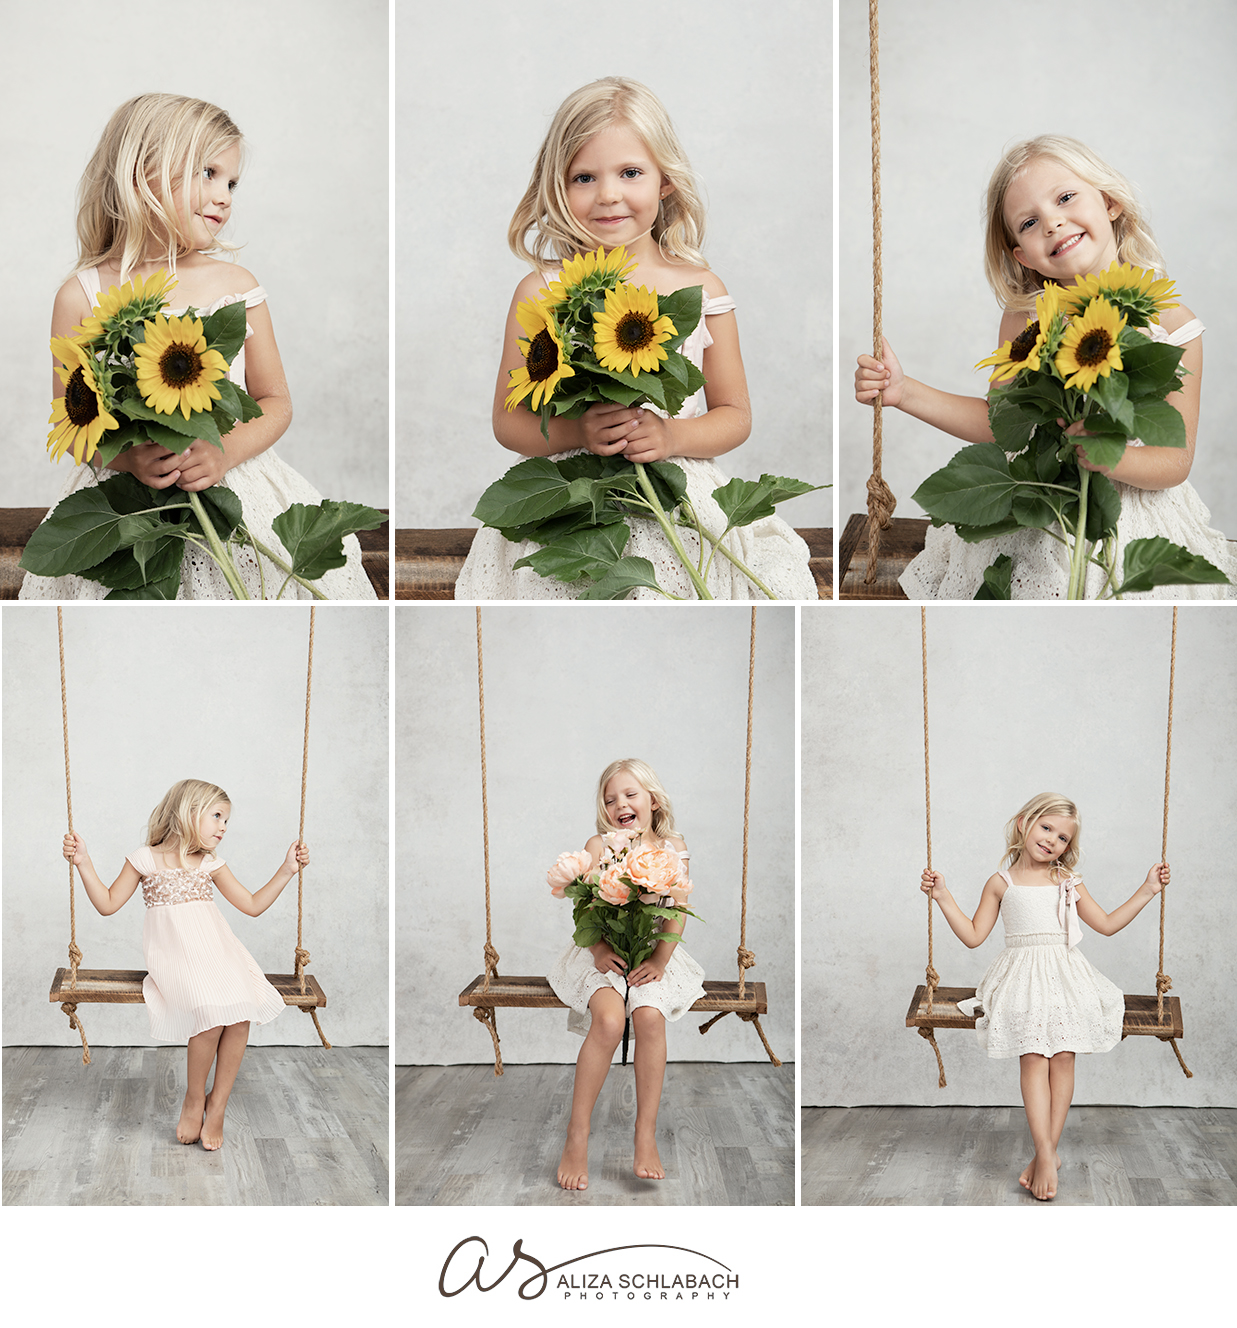 Photo collage of a little blonde girl with flowers on a wooden swing, taken in Aliza's Ardmore studio